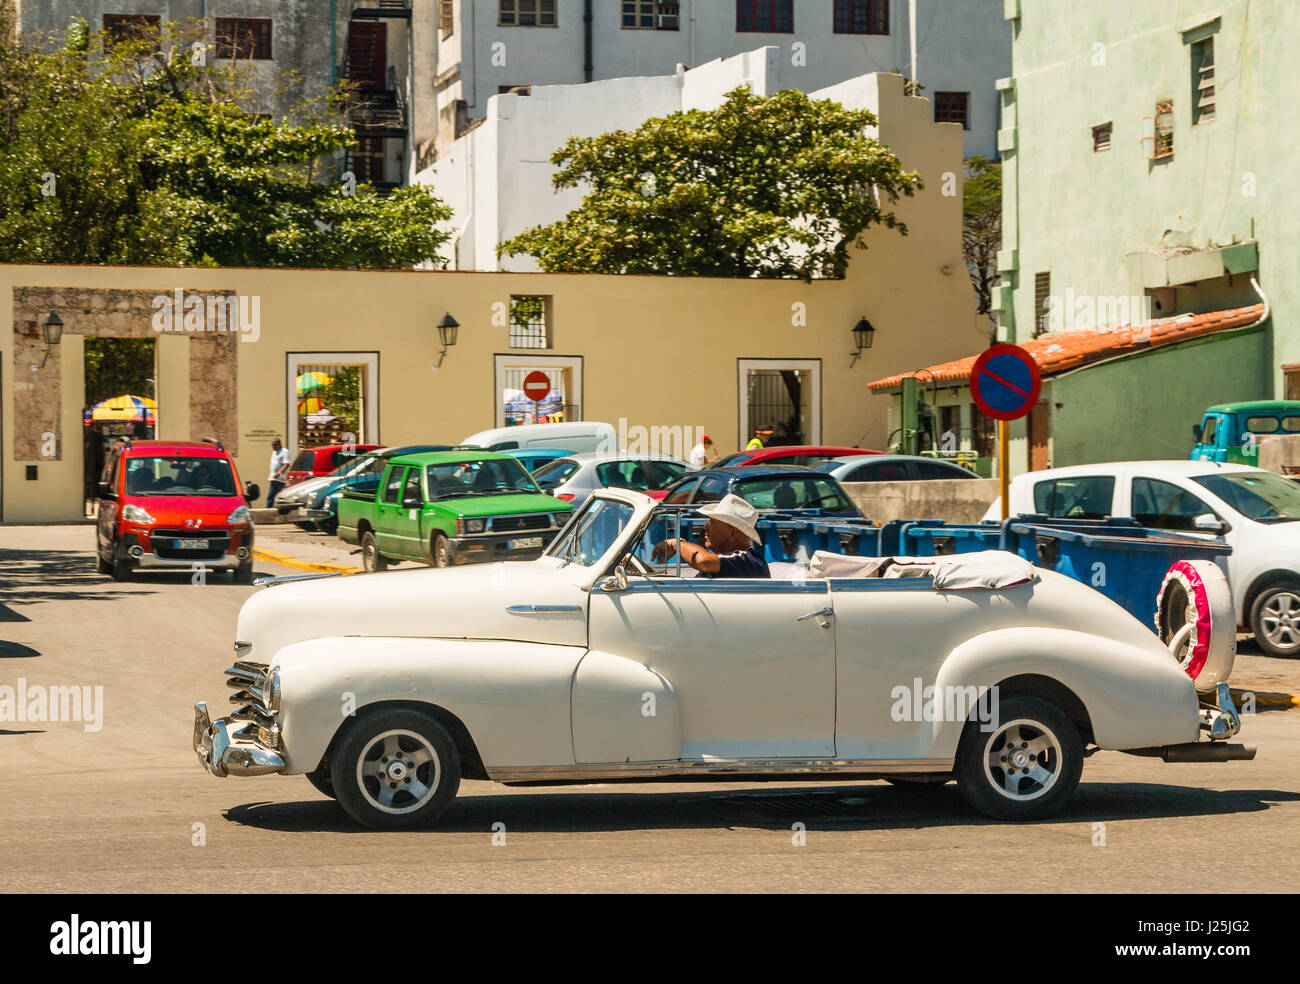 Old American convertible car, Havana, Cuba Stock Photo, Royalty Free ...